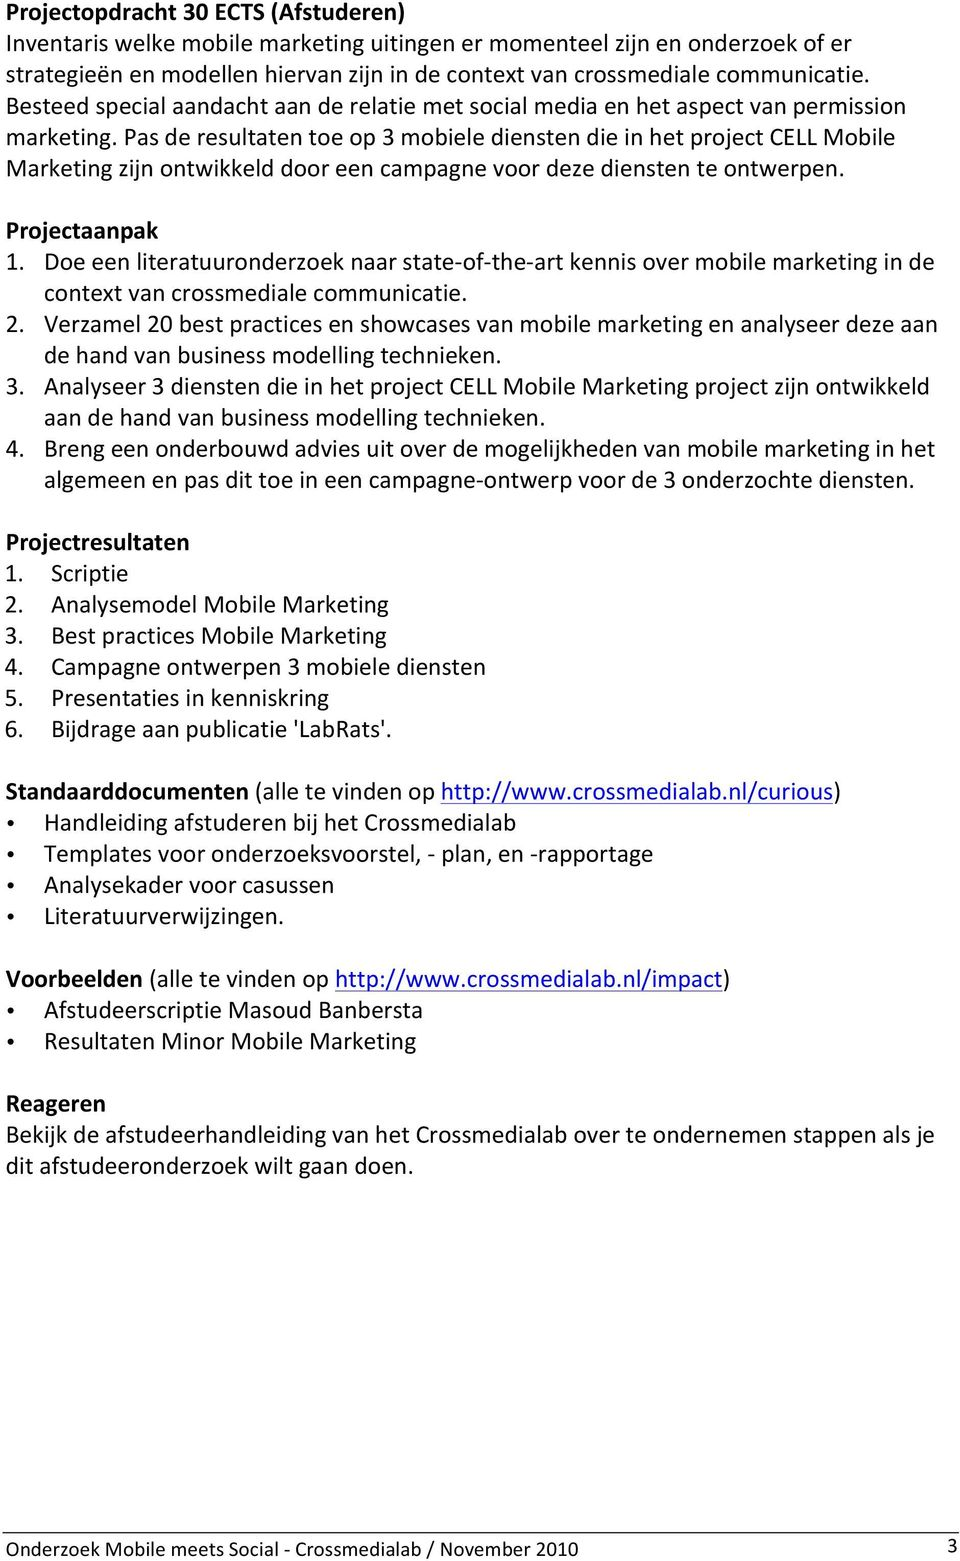 Pas de resultaten toe op 3 mobiele diensten die in het project CELL Mobile Marketing zijn ontwikkeld door een campagne voor deze diensten te ontwerpen. 1.